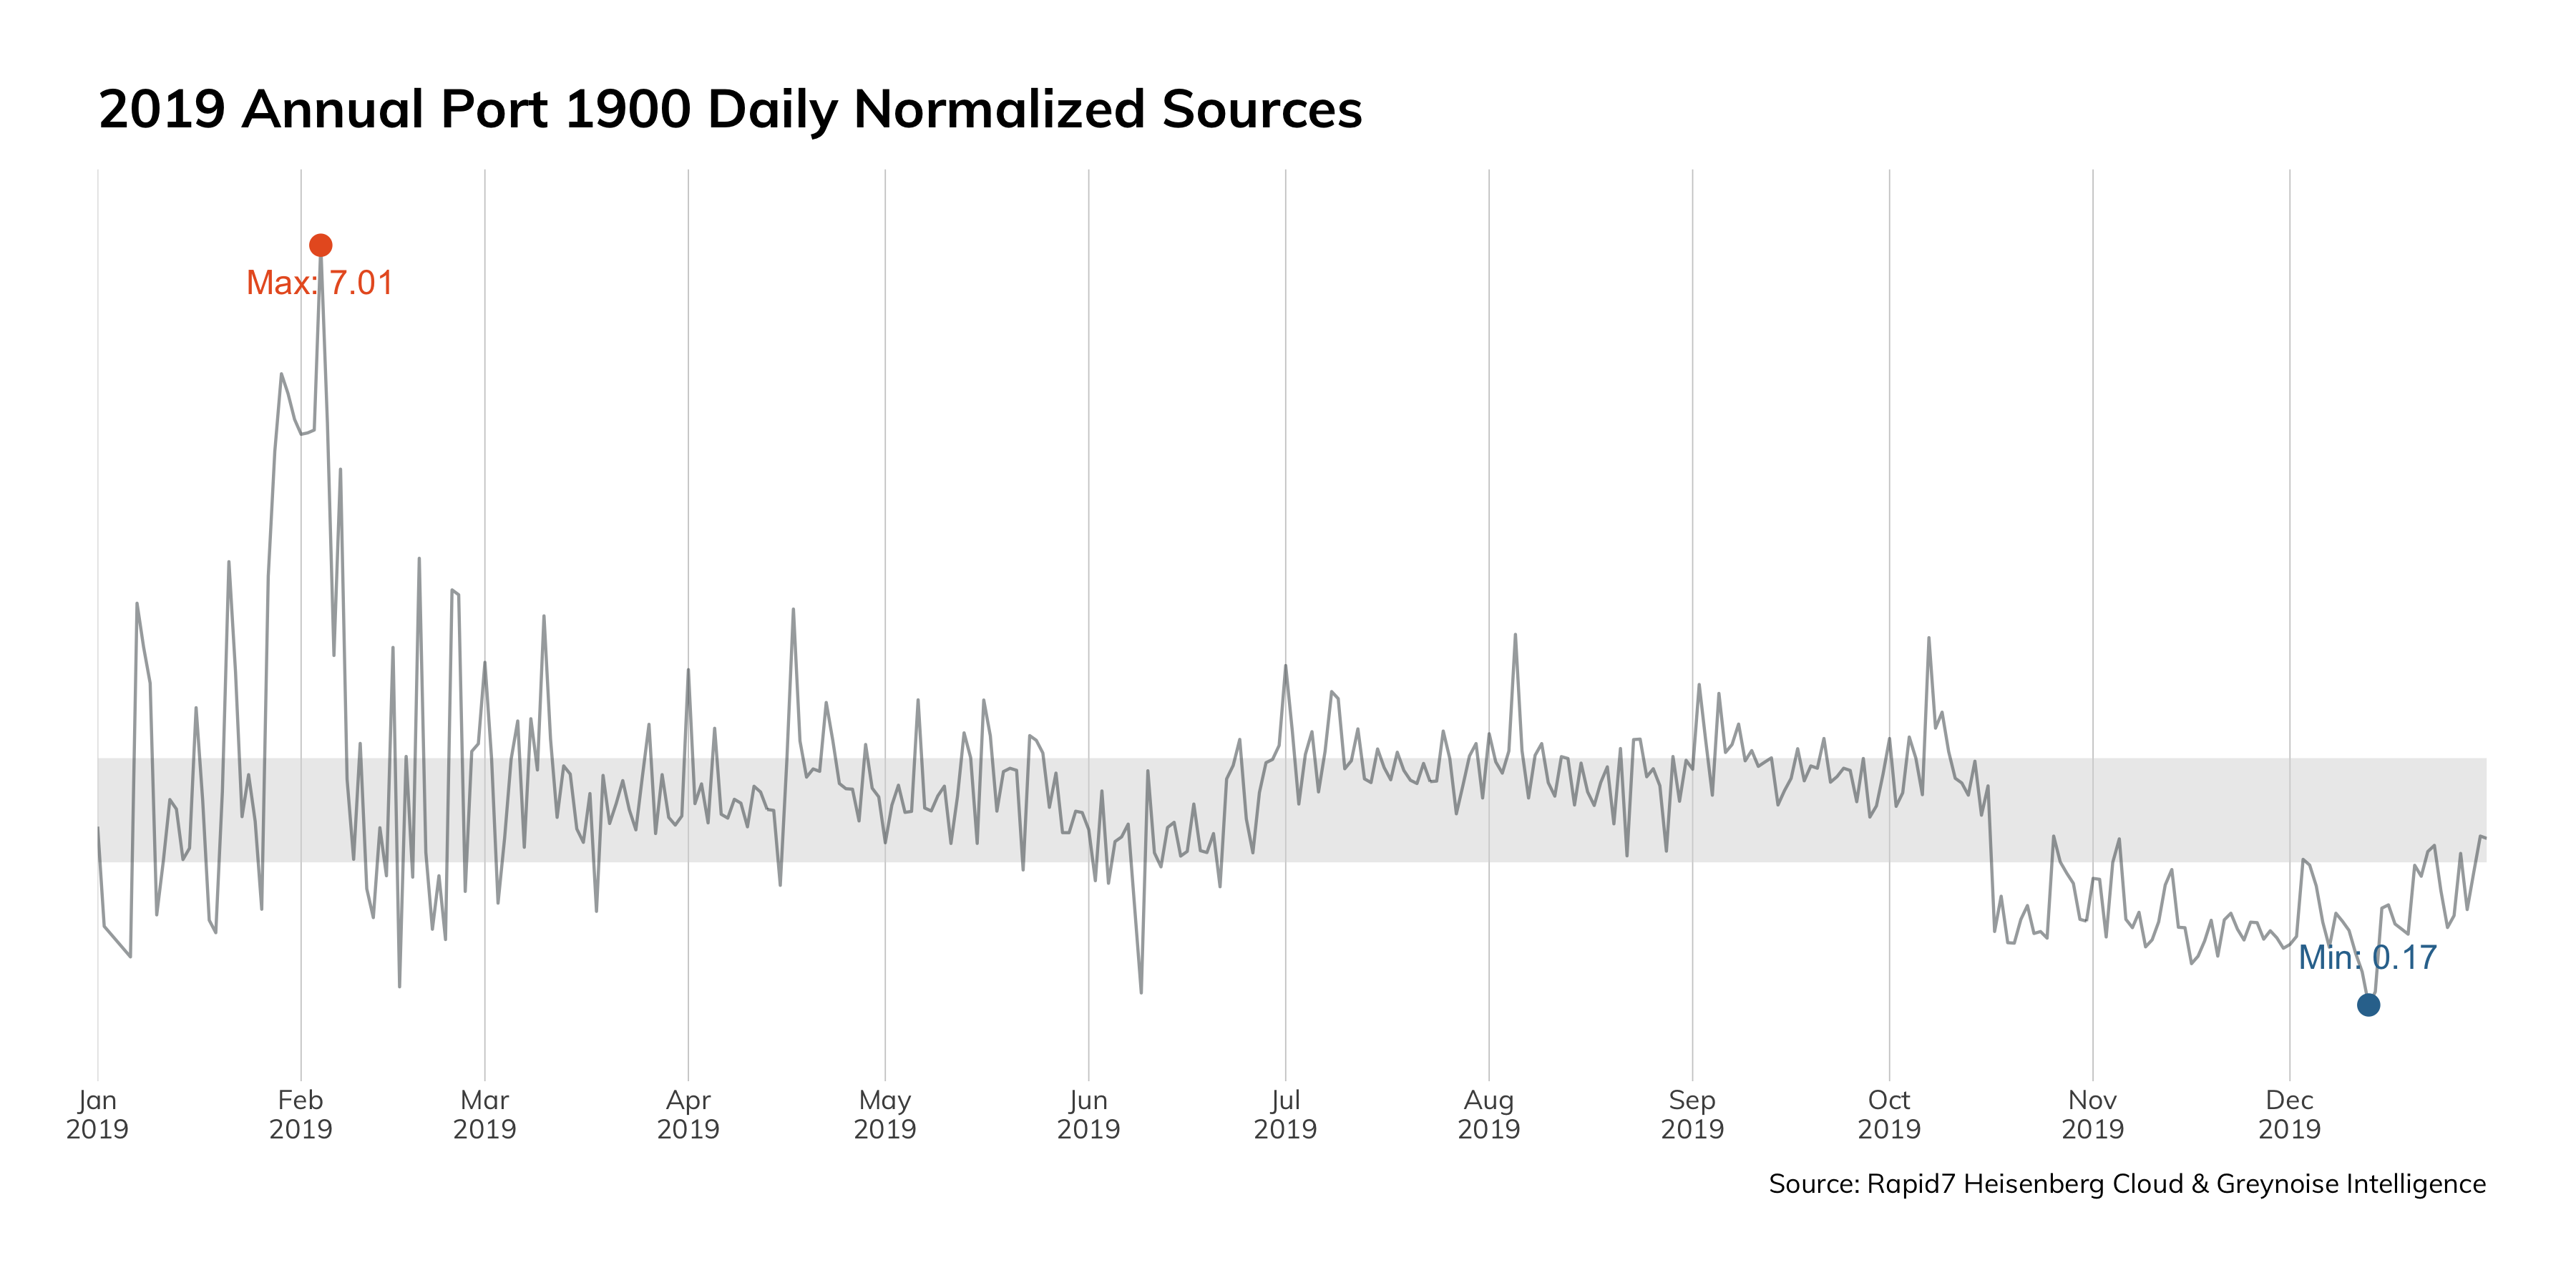 Figure 8: 2019 Annual Port 1900 Daily Normalized Sources